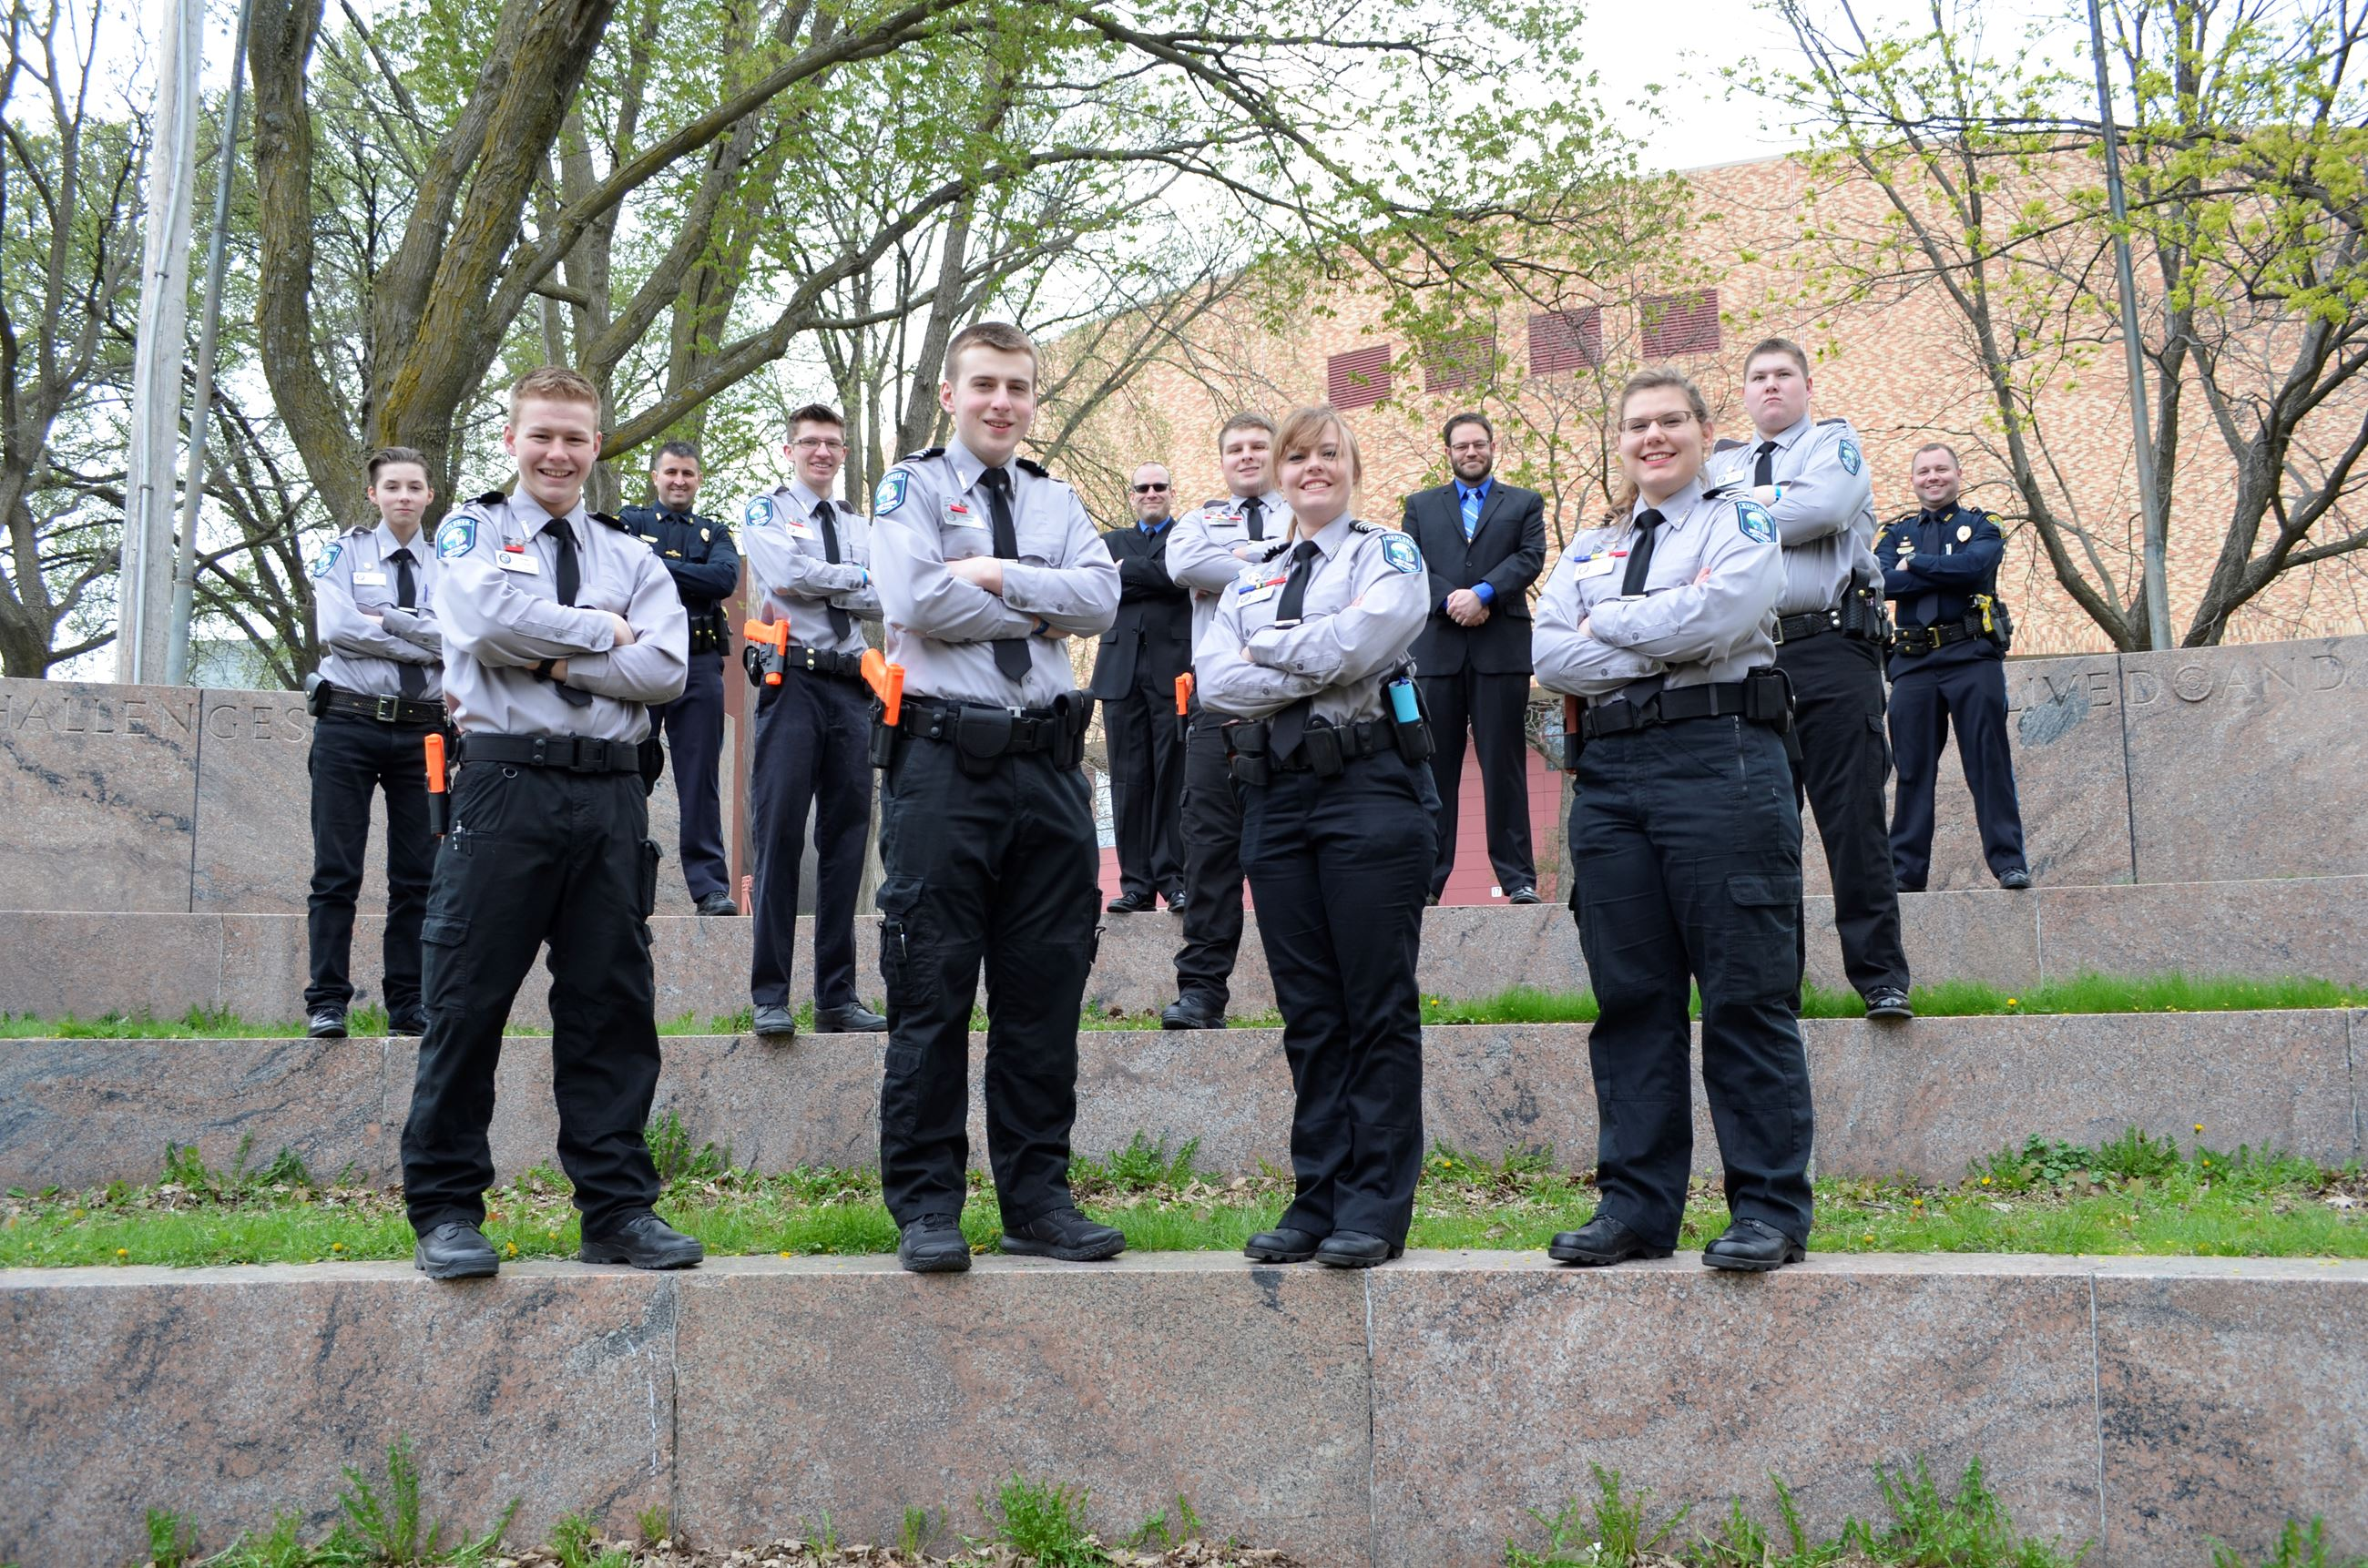 West Fargo Police Explorers at the Minnesota Law Enforcement Explorer's Association's Conferen